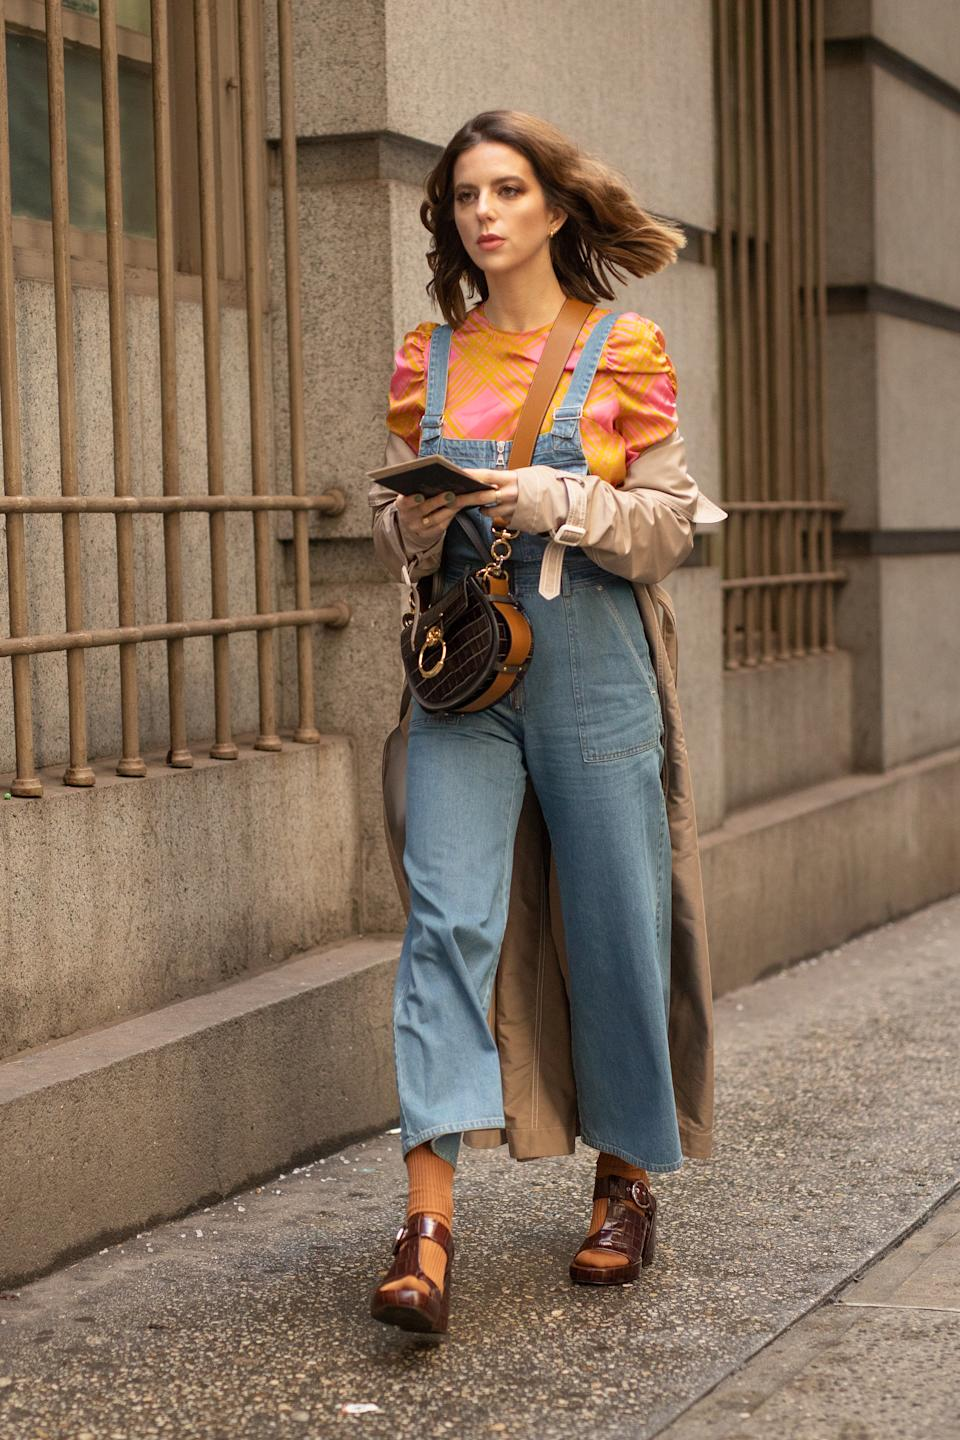 NEW YORK, NEW YORK - FEBRUARY 13: A guest is seen on the street during New York Fashion Week AW19 wearing denim overalls with orange ruffle shirt and brown heels on February 13, 2019 in New York City. (Photo by Matthew Sperzel/Getty Images)